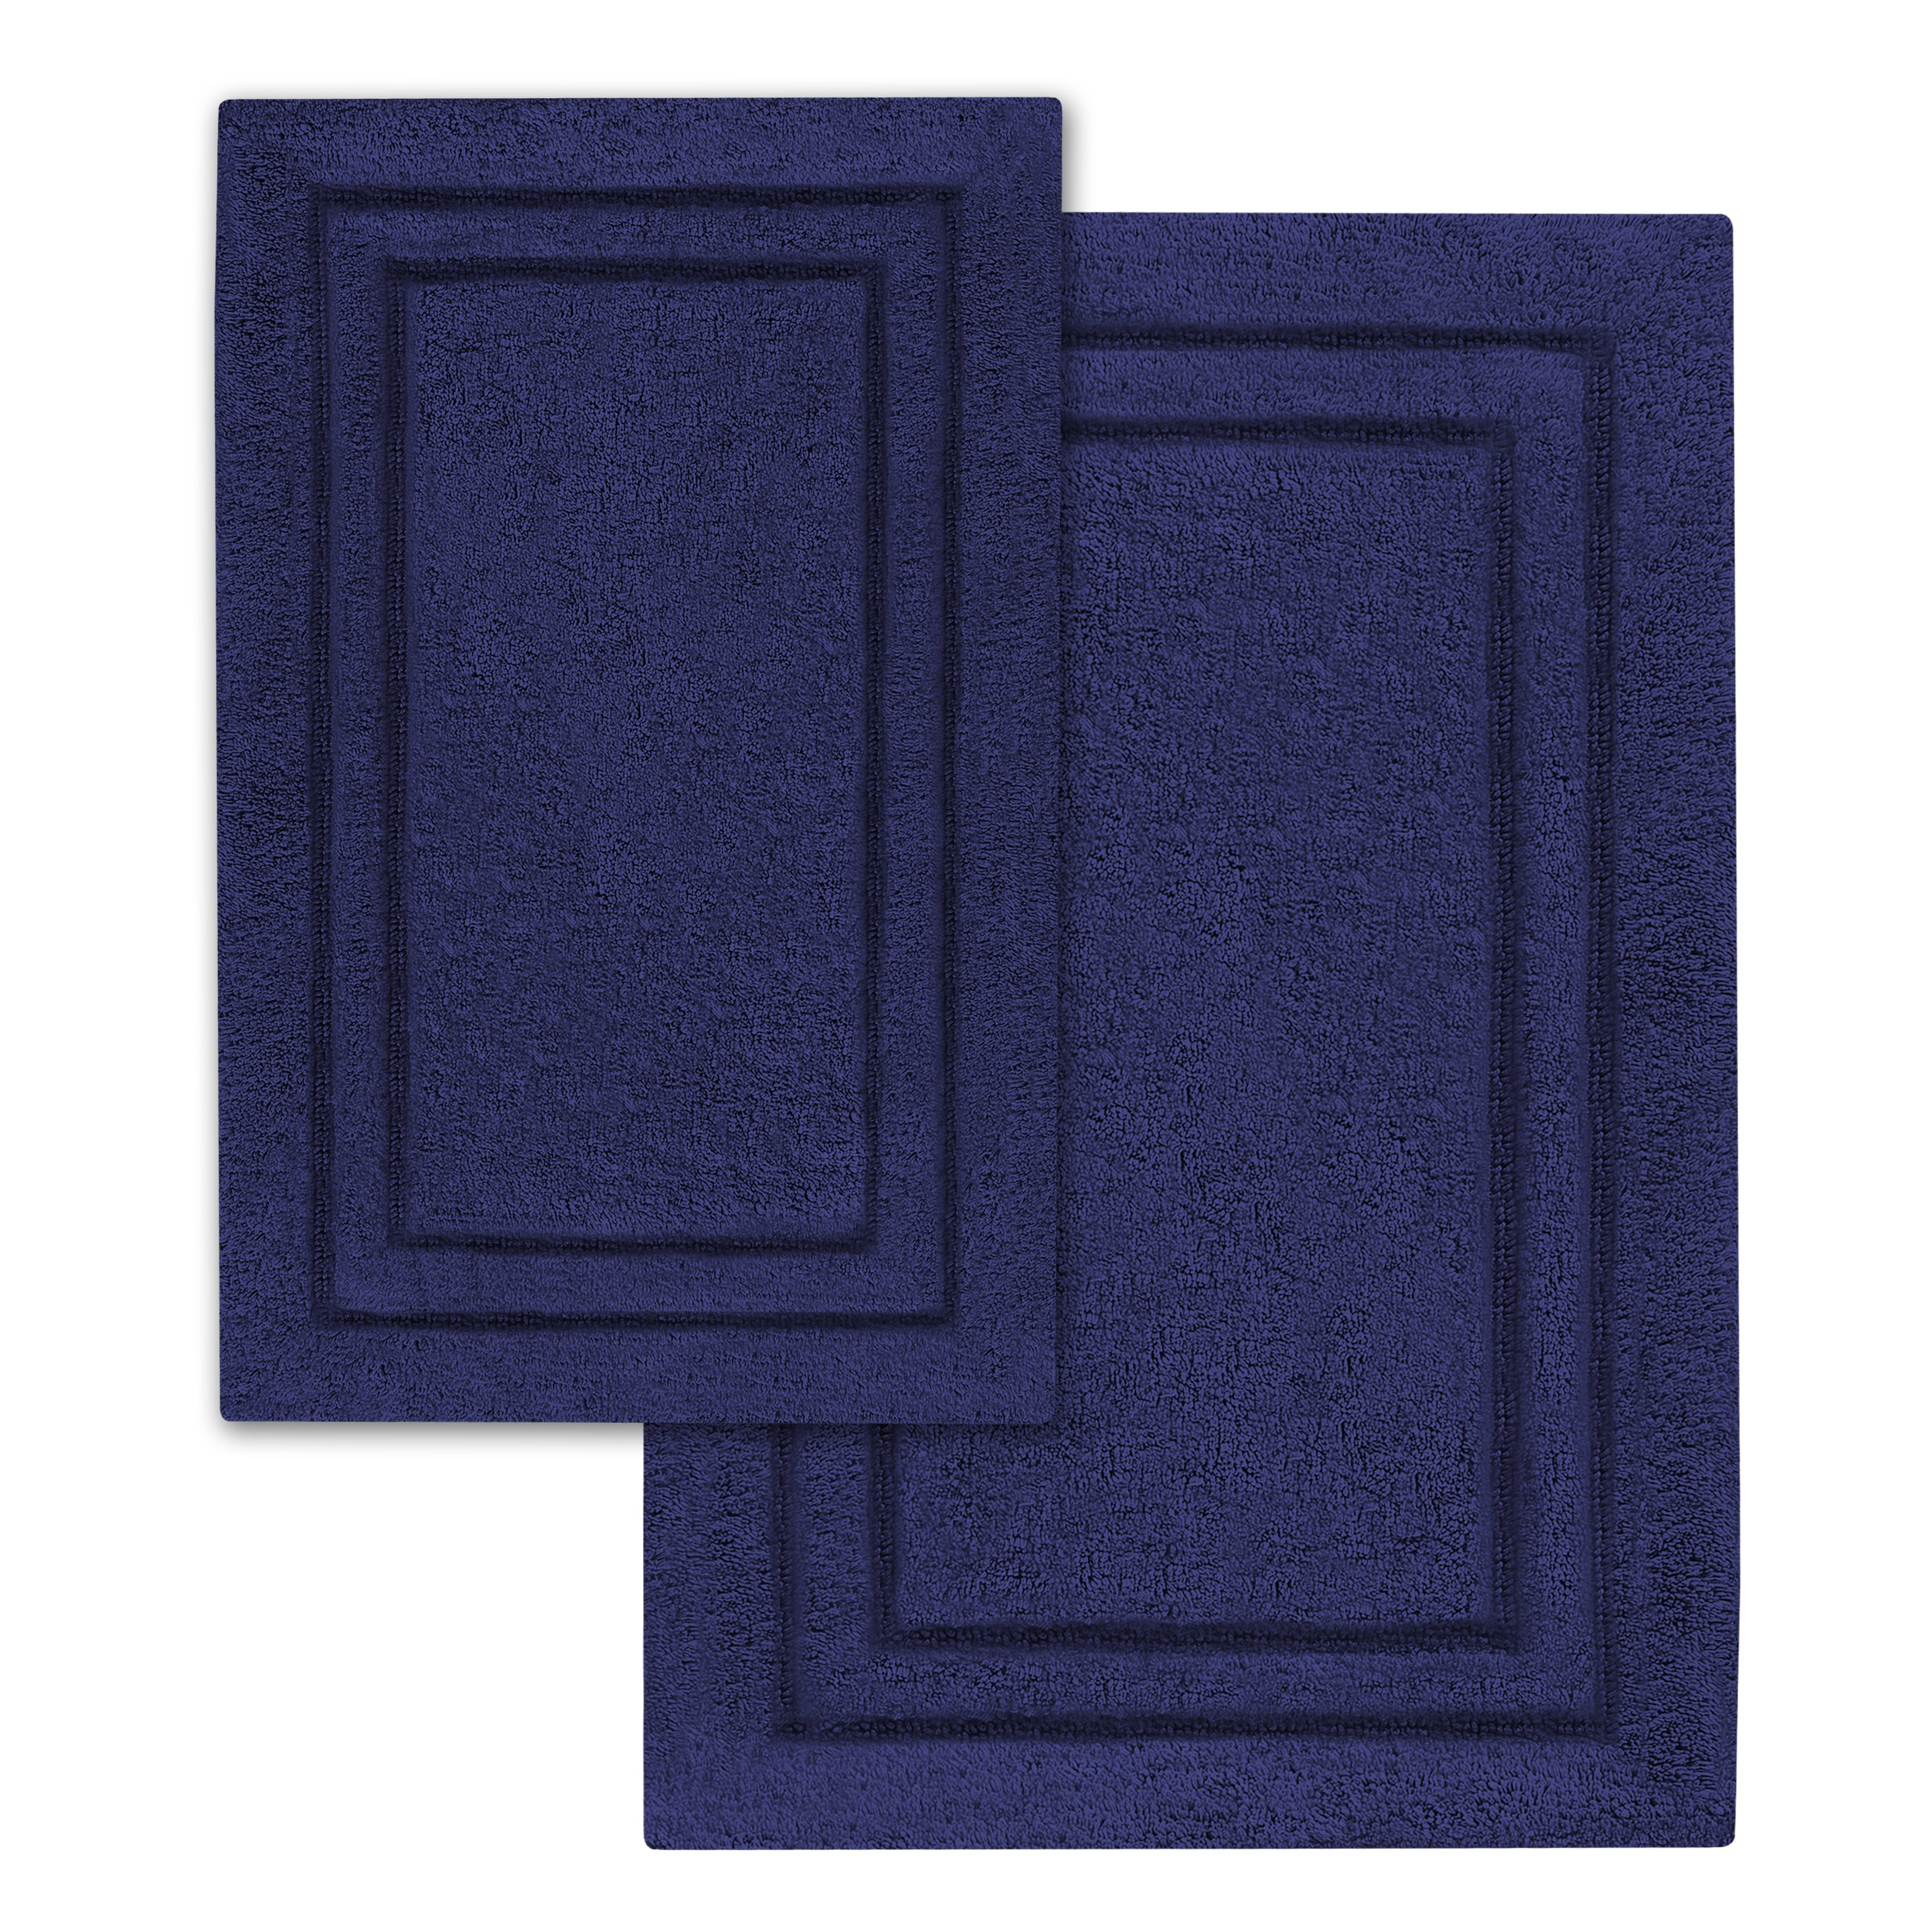 Superior 2-Pack Bath Rugs, Premium 100% Combed Cotton with Non-Slip Backing, Soft, Plush, Fast Drying and Absorbent - Navy Blue, 20'' x 30'' and 24'' x 36'' Bath Mat Set